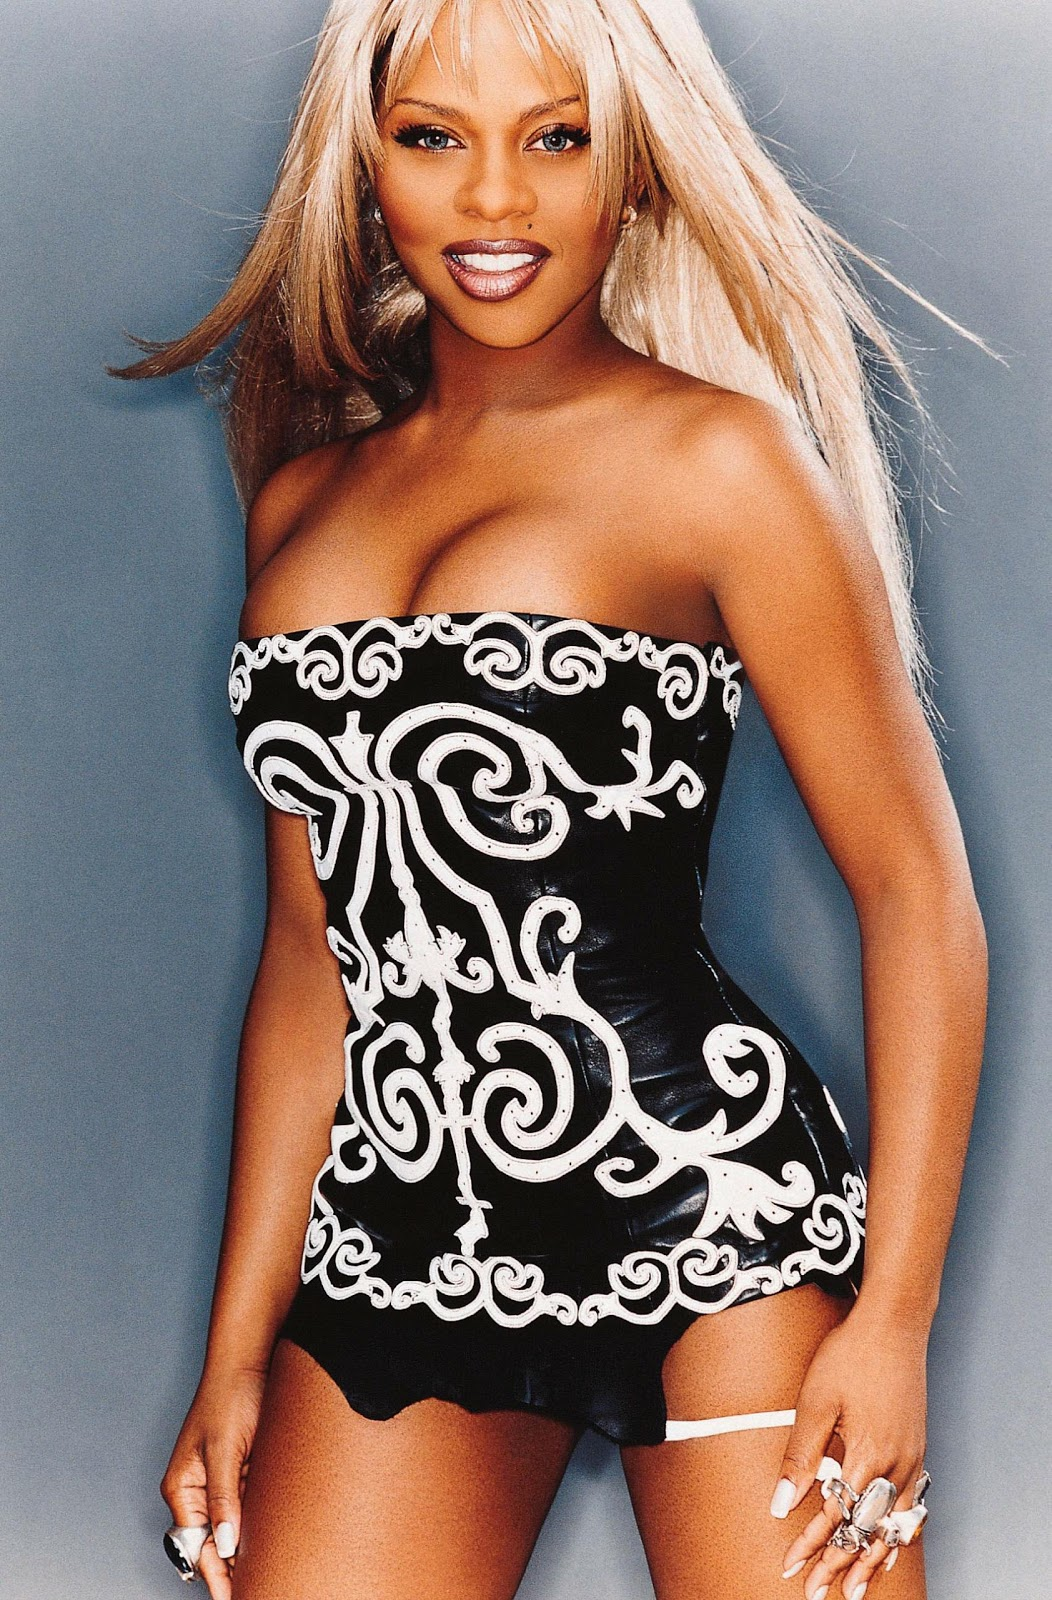 Lil Kim Is An American Rapper And Actress Born In Brooklyn, New York